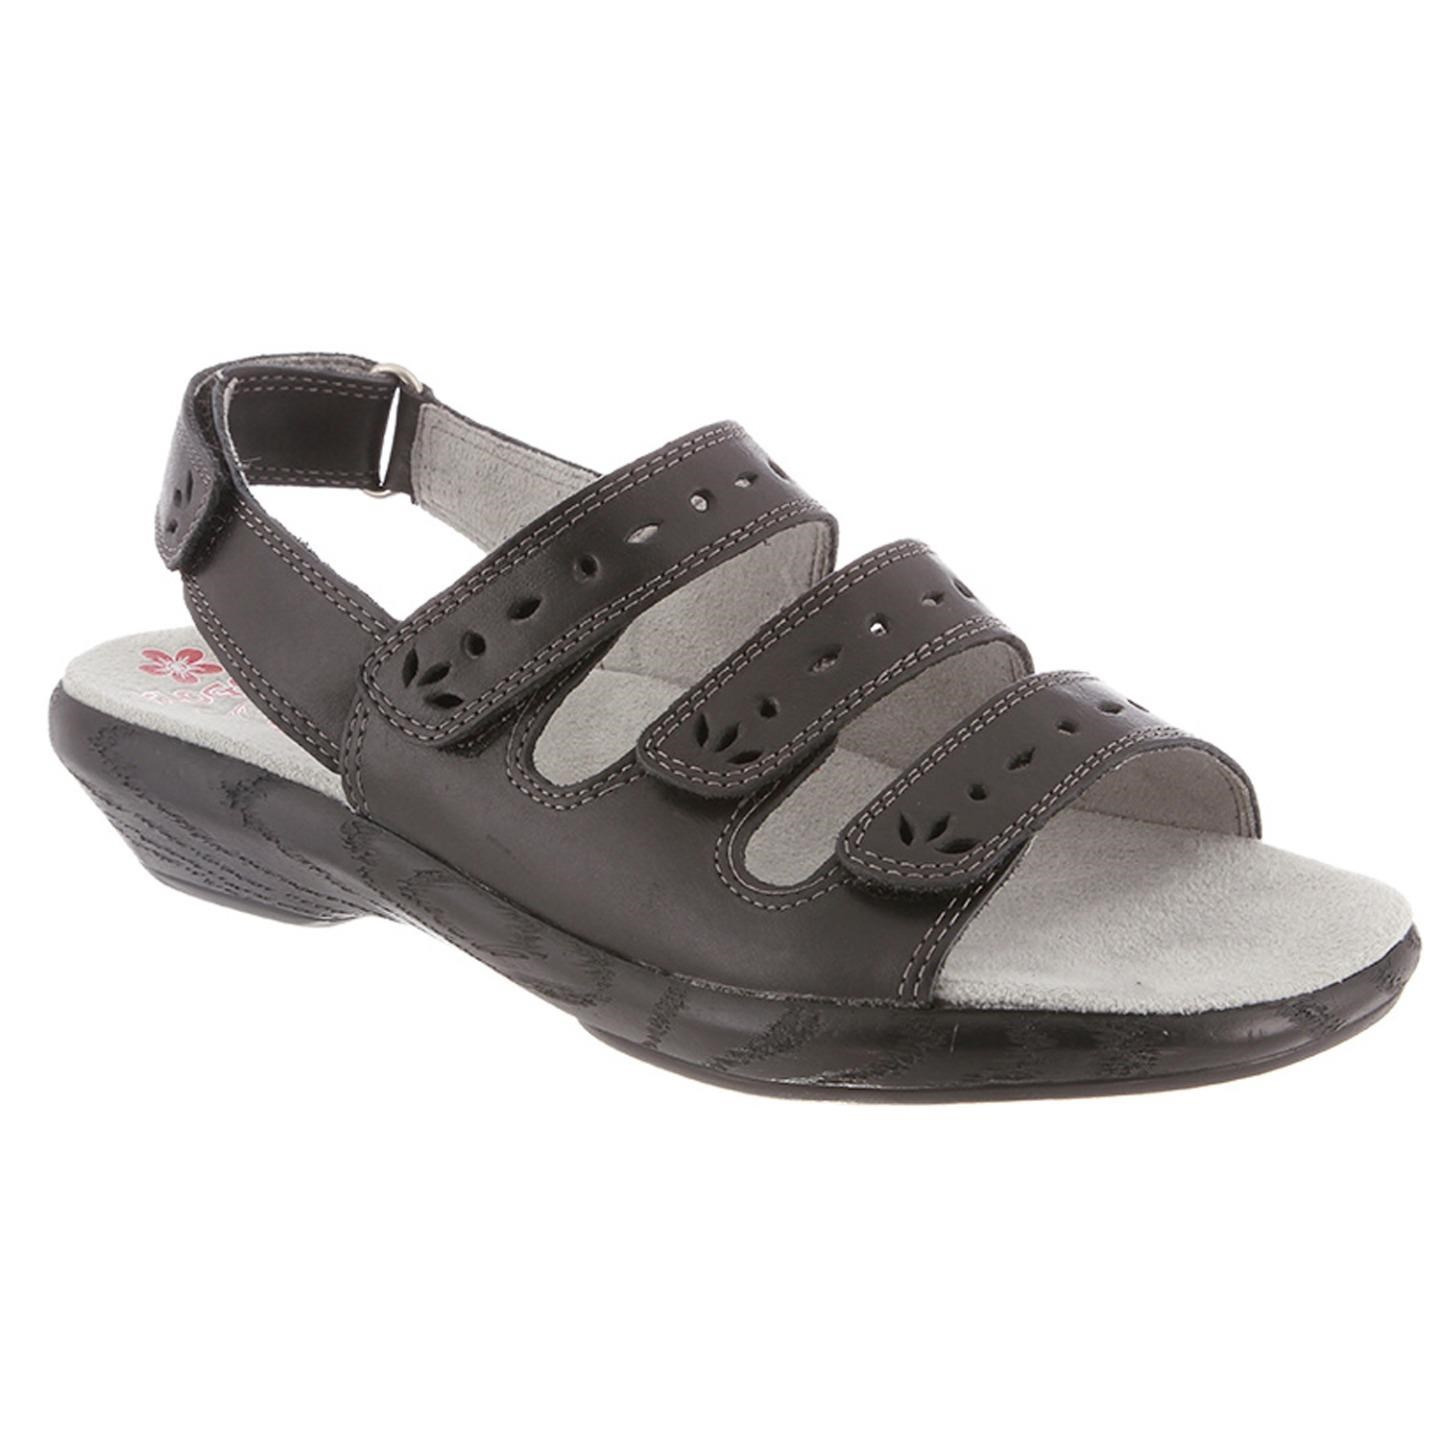 Lacie By Klogs Black Bali Womens Leather Sandals 8 M